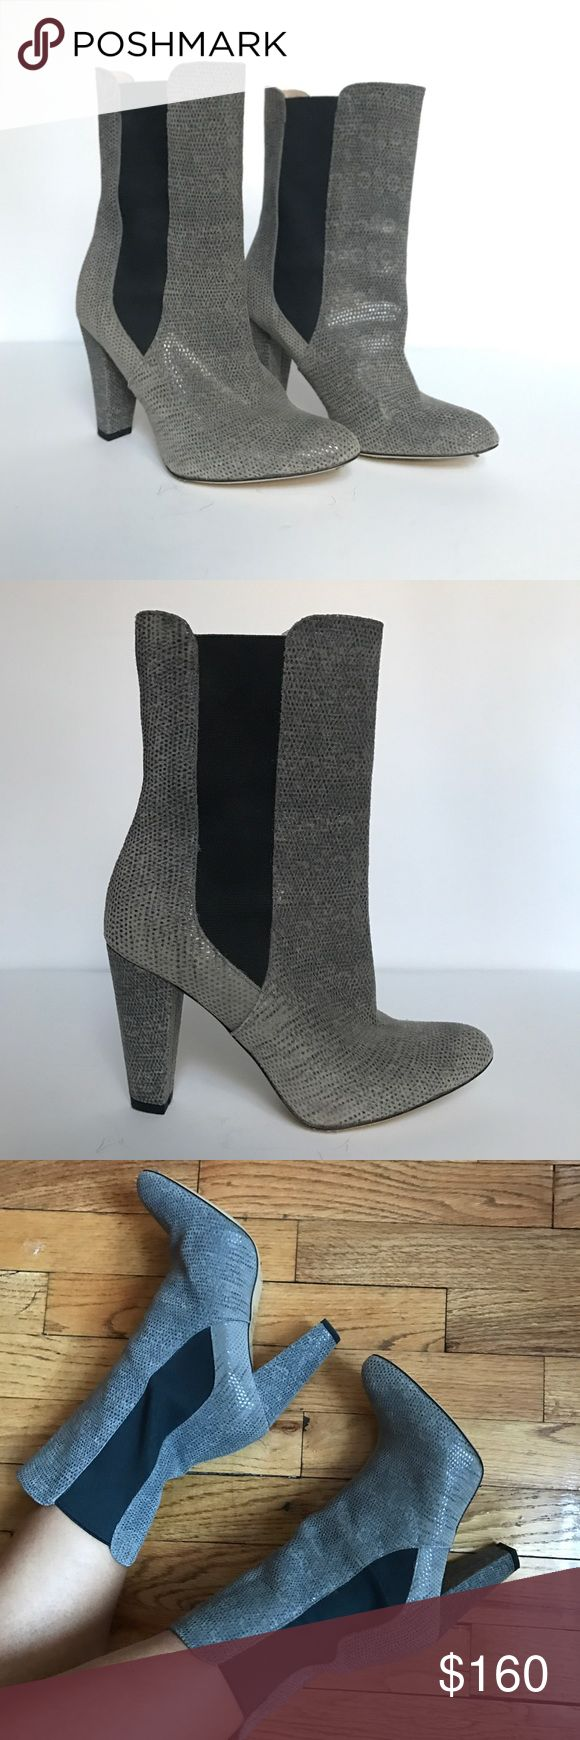 Like New REISS Boots Beautiful python inspired grey boots from REISS, black elastic on both sides for easy pull up. They are European 38 but RUN SMALL, best for someone size US 6/6.5 or narrow 7. Material is like a soft suede with python type of texture. Only worn once, like new except for soles. Heel is 3.5in. No box. Reiss Shoes Heeled Boots